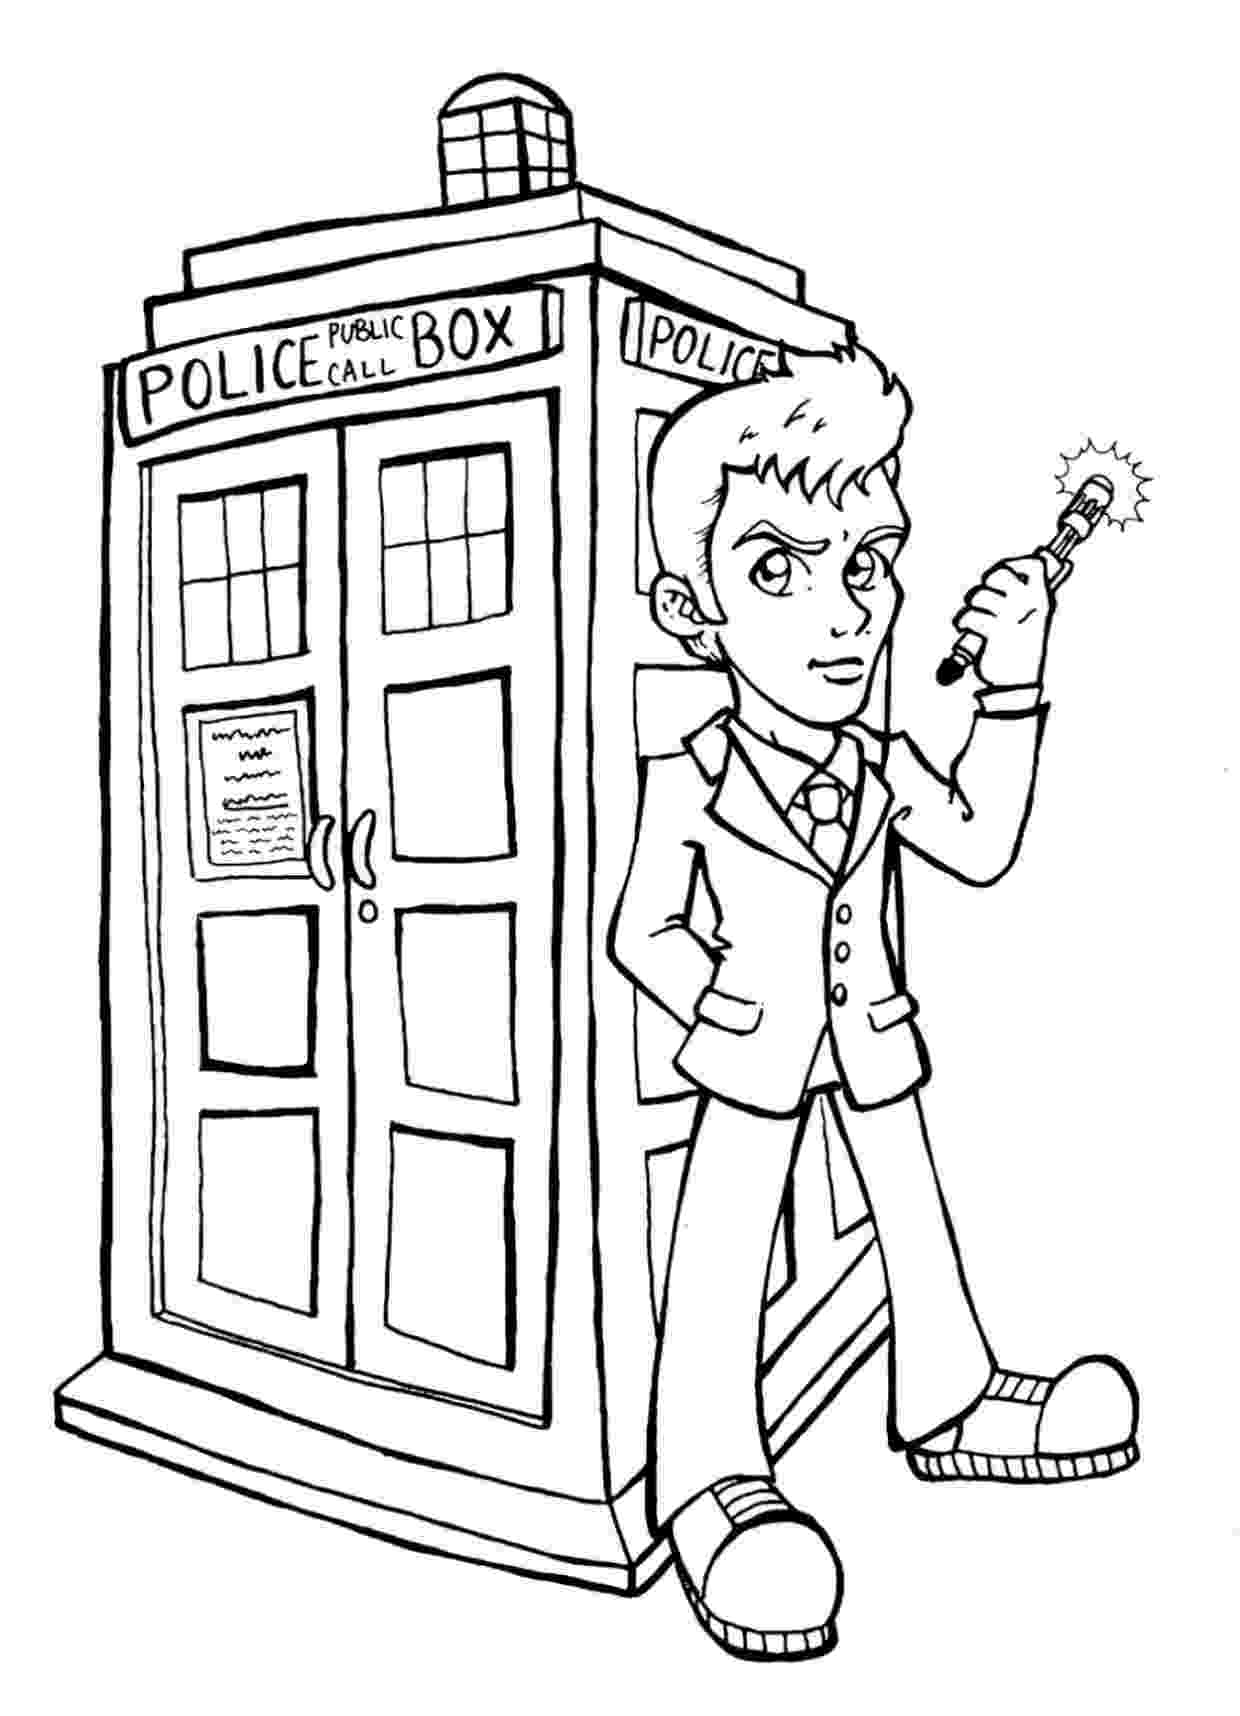 doctor who tardis coloring pages doctor who coloring pages best coloring pages for kids coloring tardis who pages doctor